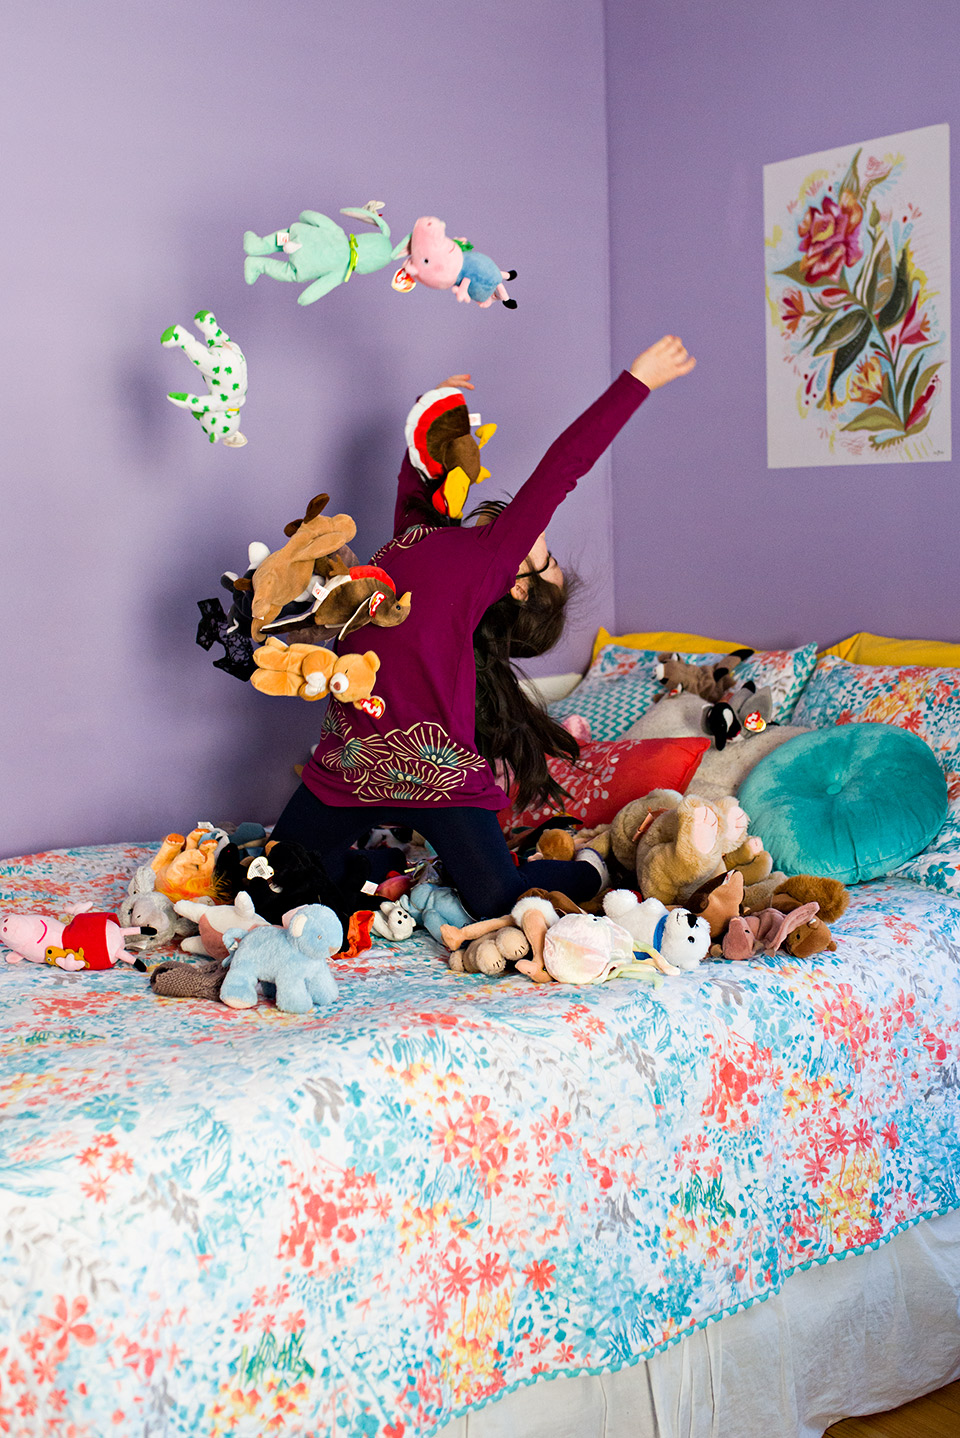 girl throwing stuffed animals in the air on her bed west hartford ct family documentary photography